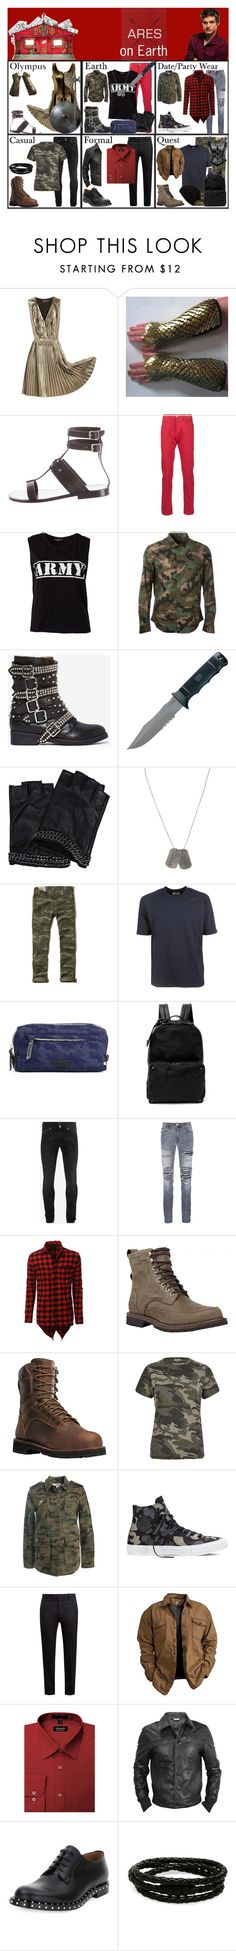 """Areas on Earth (Daniel Sharman as Ares)"" by elmoakepoke ❤ liked on Polyvore featuring Mulberry, Yves Saint Laurent, 3x1, Sally&Circle, Valentino, Jeffrey Campbell, Karl Lagerfeld, Dsquared2, Hollister Co. and Camo"